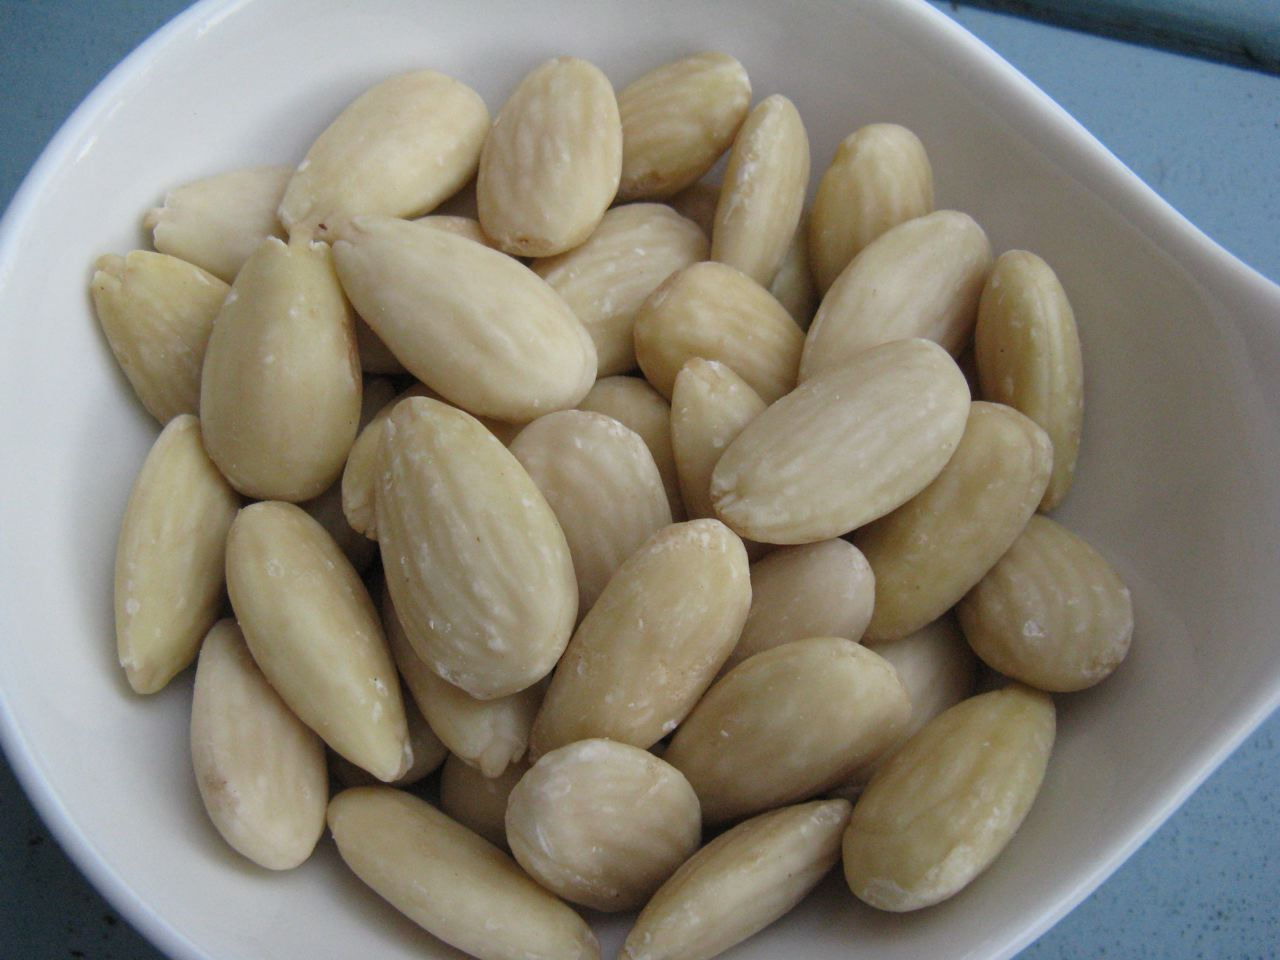 Are Natural Almonds Good For You